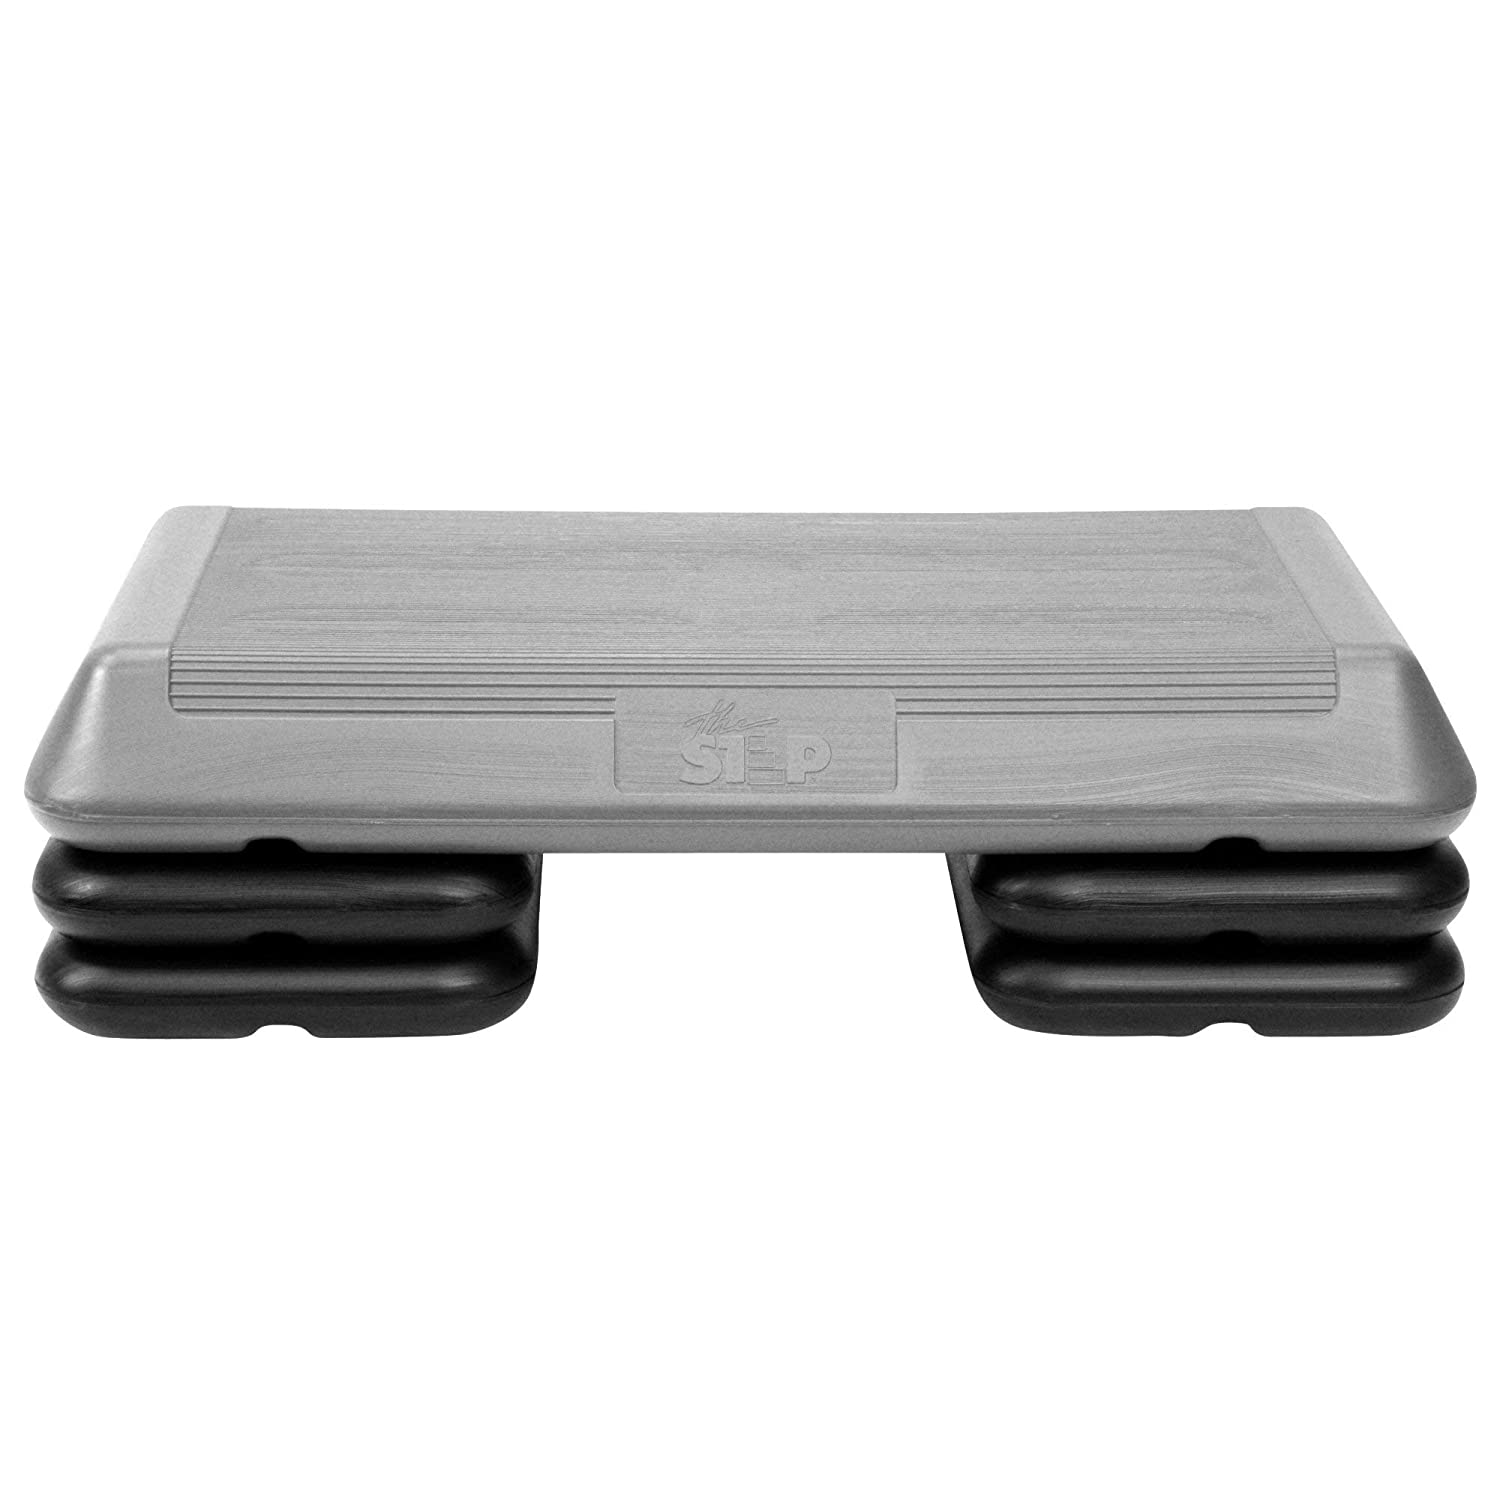 The Step Original Aerobic Platform Circuit Size Certified Refurbished